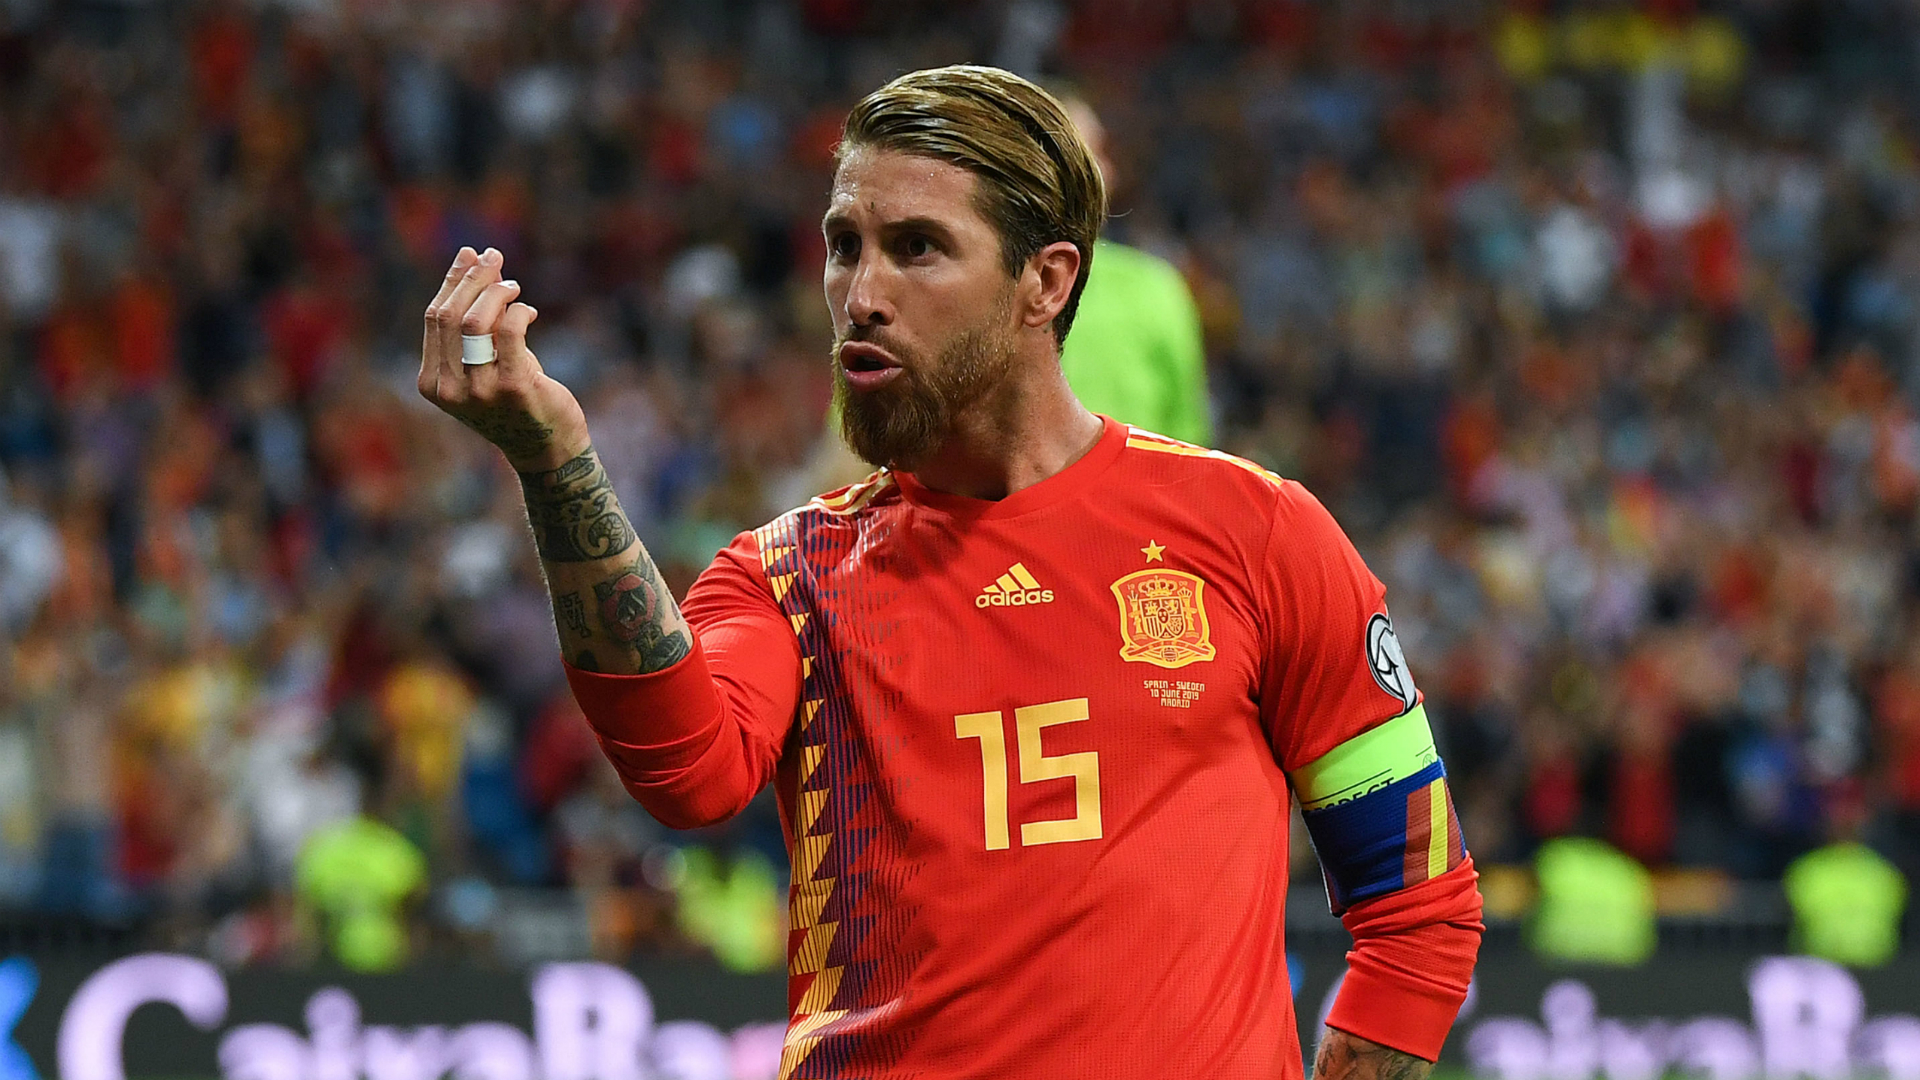 Spain coach Moreno hails record-breaking Ramos